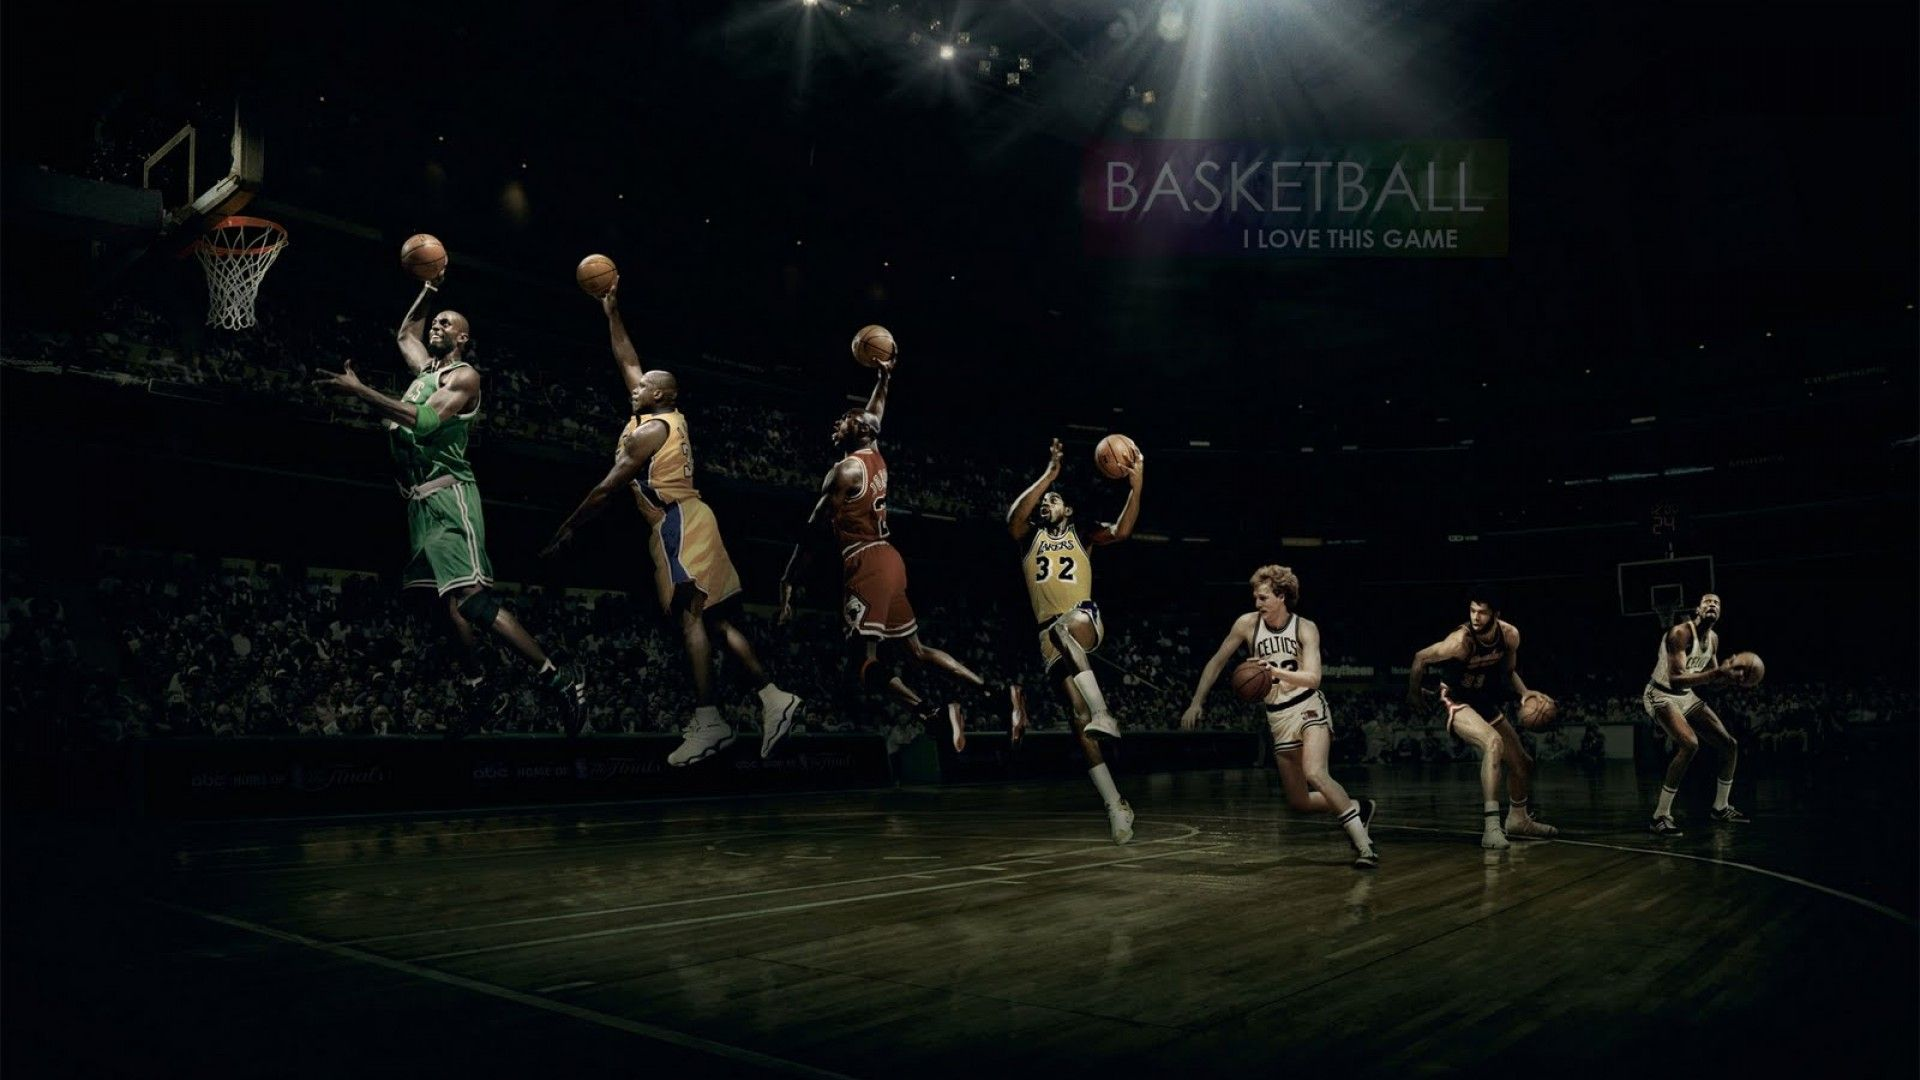 Basketball Wallpapers Hd Basketball Wallpapers Hd Basketball Wallpaper Basketball Pictures